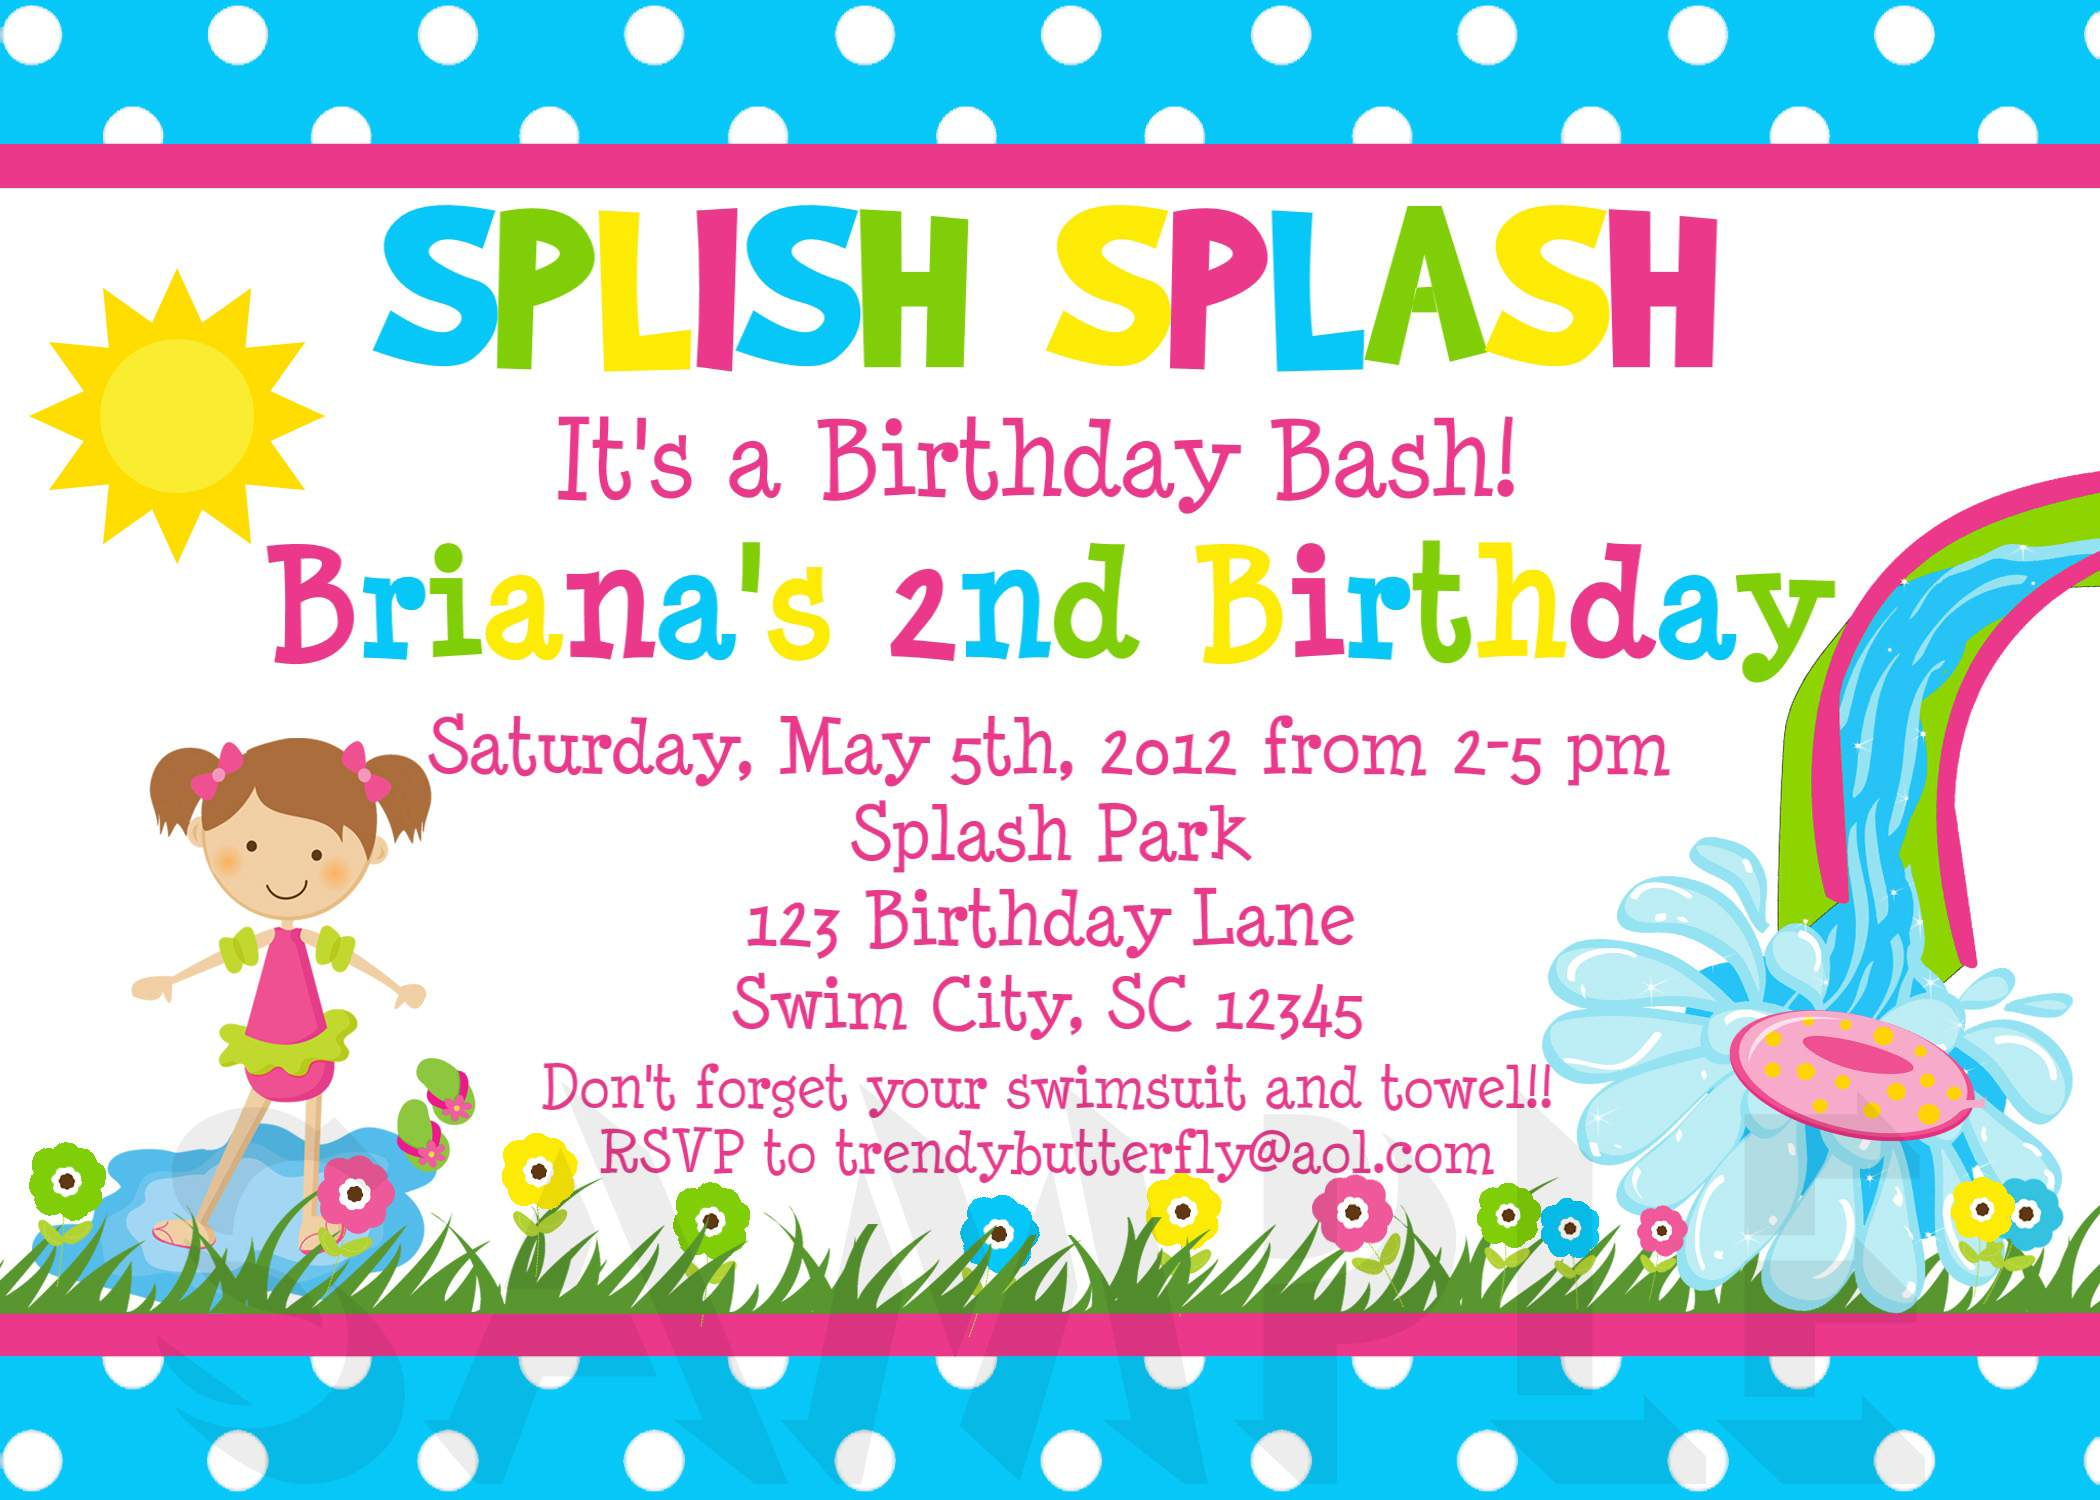 birthday invitation card design for kids ; Birthday-Party-Invitation-Letter-For-Kids-and-get-inspiration-to-create-the-birthday-Invitation-design-of-your-dreams-1